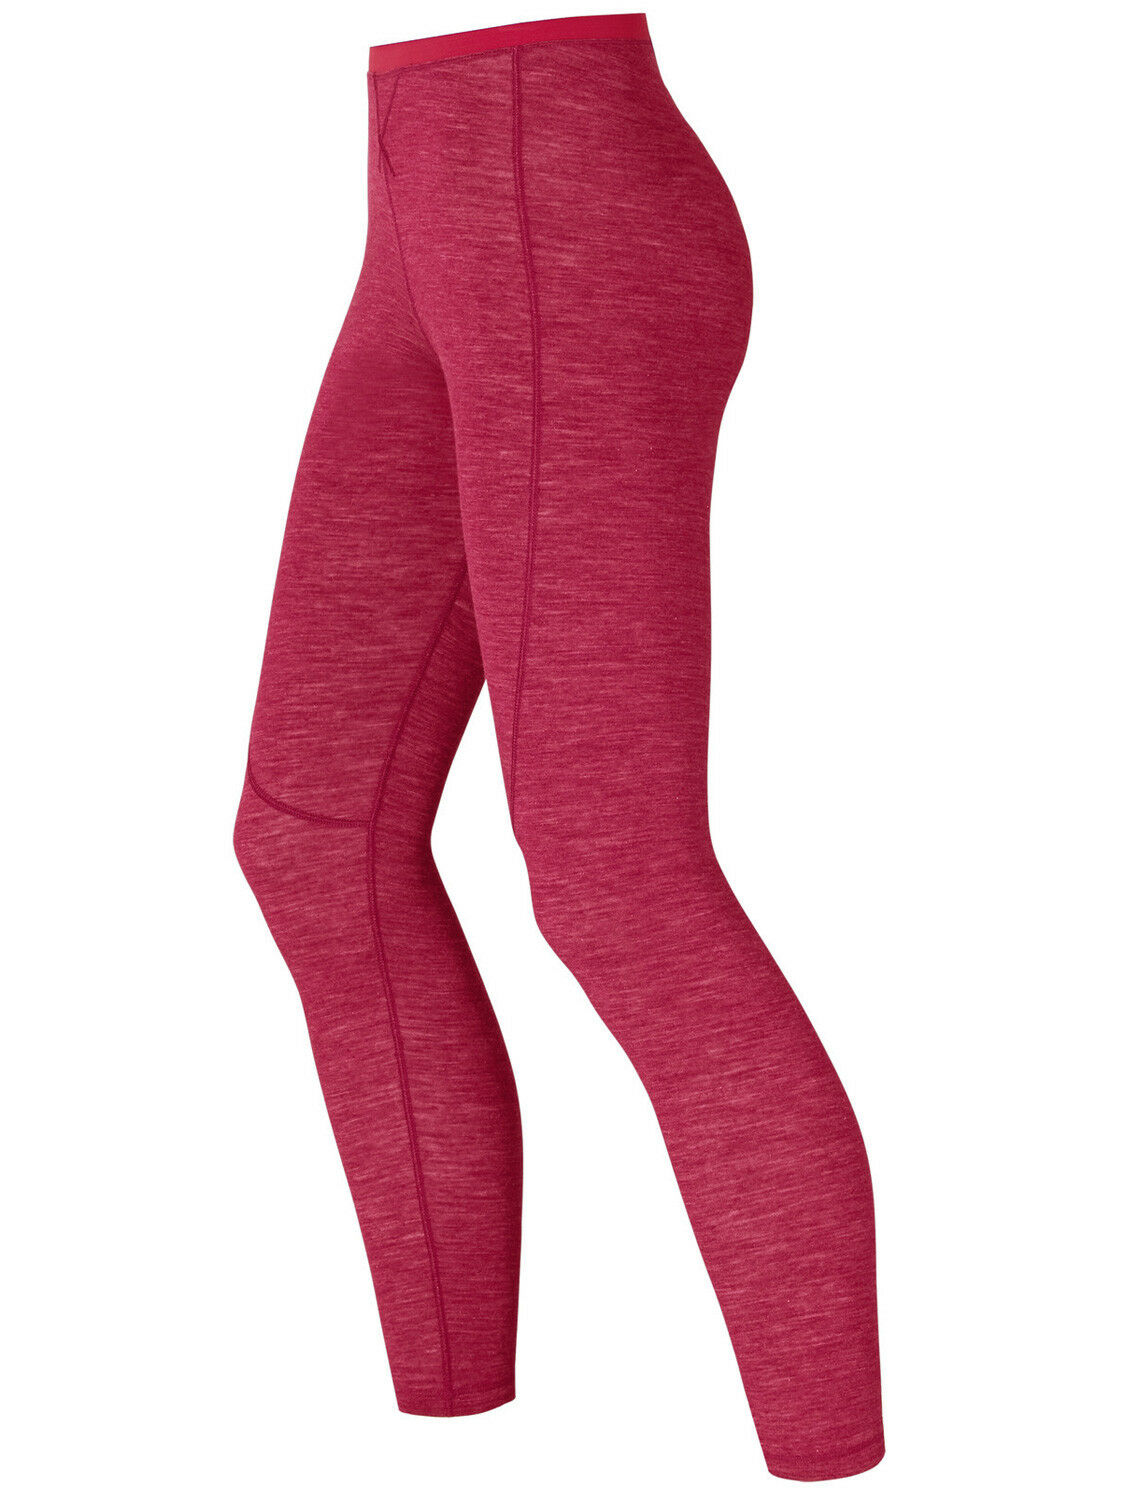 Odlo Damenschuhe Baselayer Damenschuhe Thermal Revolution Pants Rosa Thermal Damenschuhe Warm Ski Snowboard db1f9d